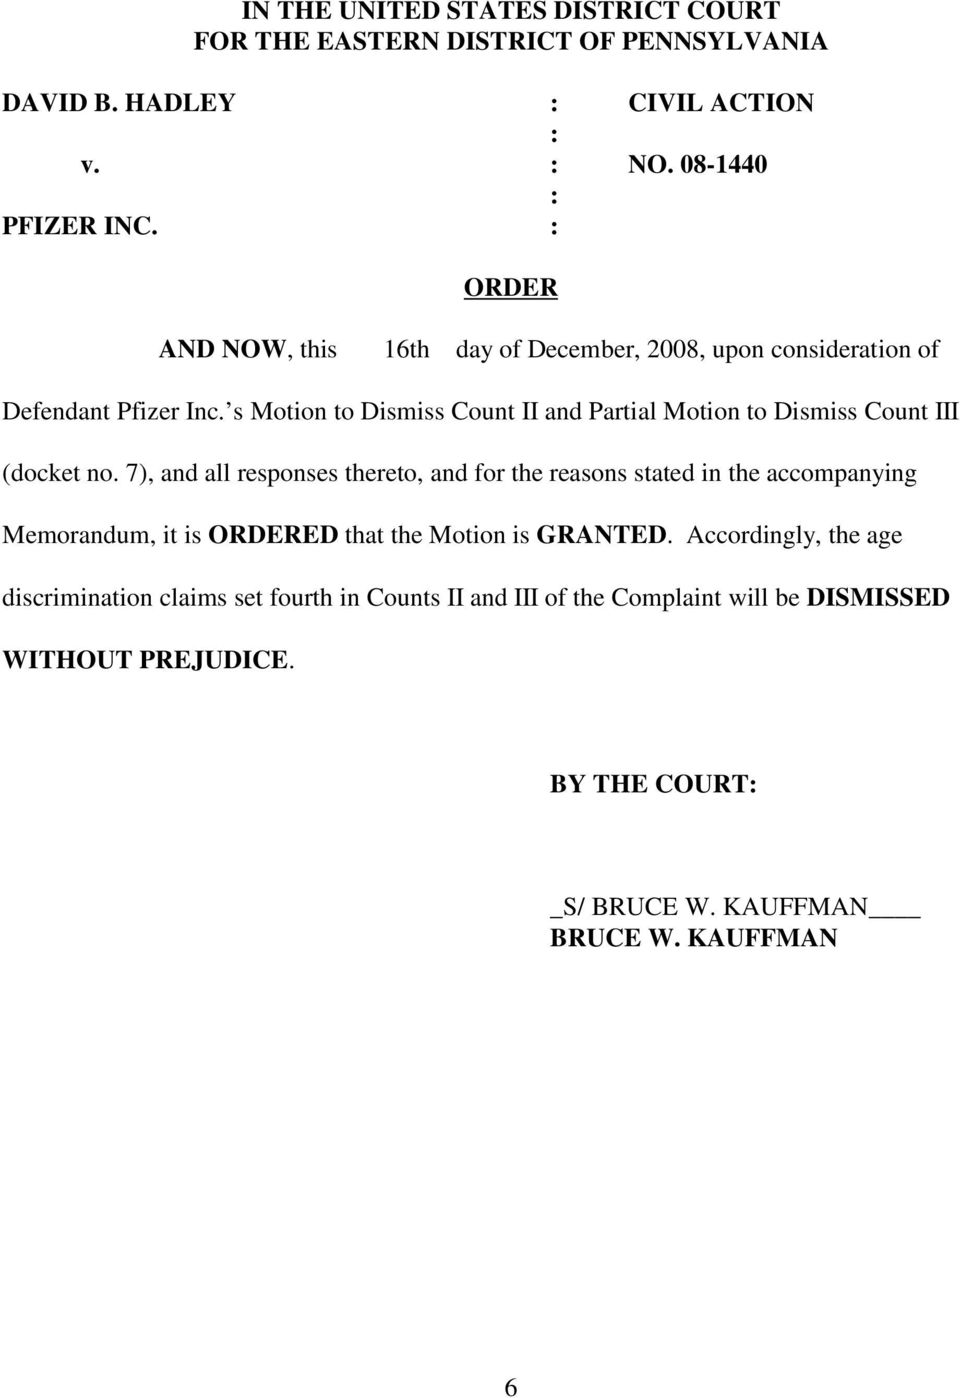 s Motion to Dismiss Count II and Partial Motion to Dismiss Count III (docket no.